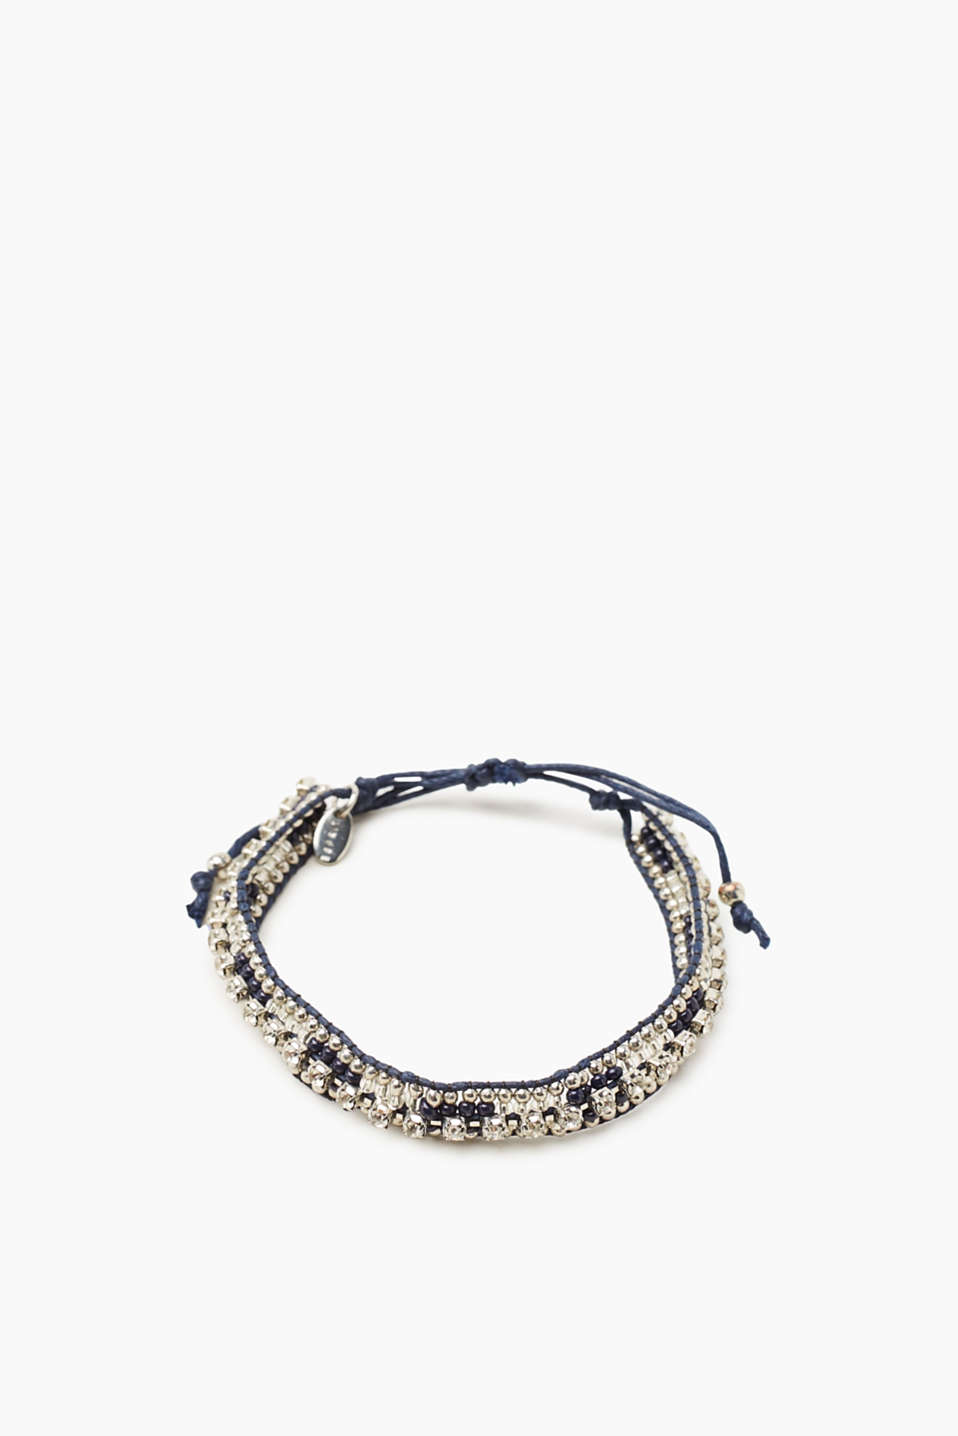 Beads and facet-cut stones! This braided bracelet is a favourite for everyday wear.